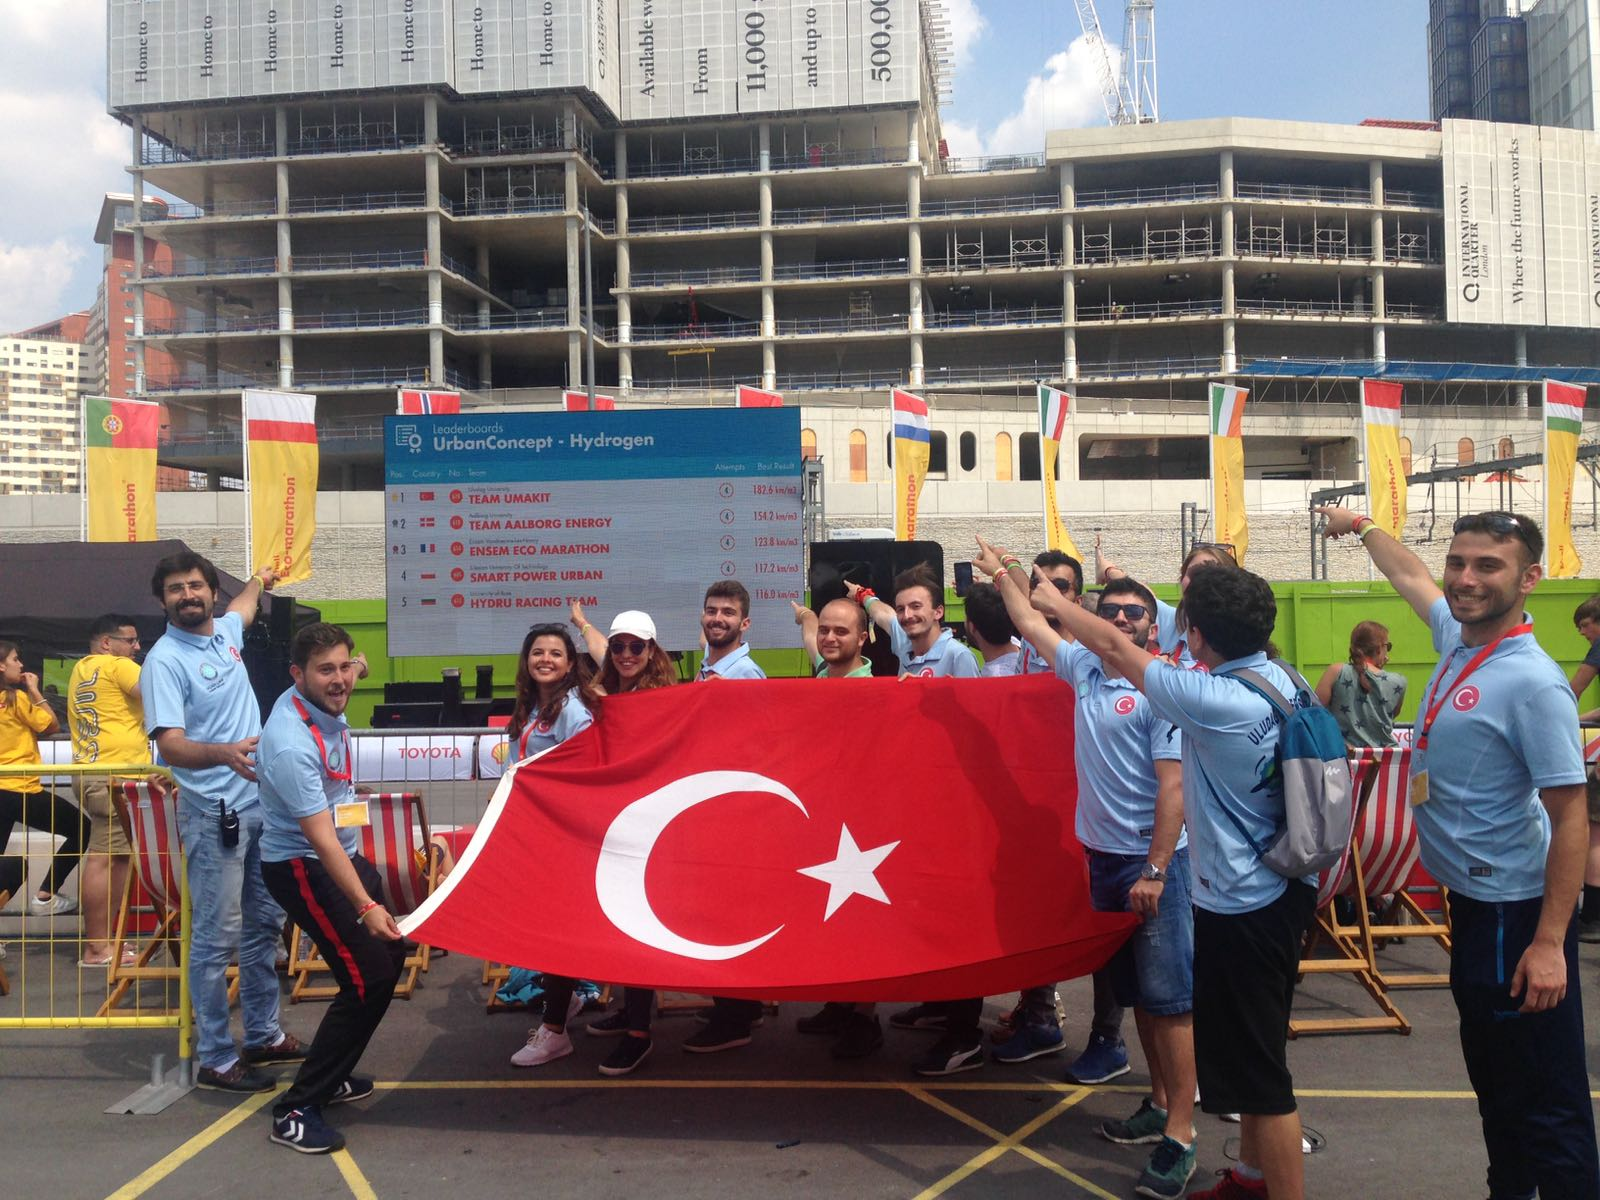 <div>UMAKİT, is developing hydrogen-powered cars.İt has participated and beig part in competitions in international level in recent years representing Turkey.<br /> <br /> Shell Eco-Marathon Europe, based on the longest distance to travel with the least energy, was held in London in July. Turkey team who win the European championship competing with 11 competitors in their field made history as the first Turkish team. İnternal hydrogen powered vehicle with 1 cubic meter of hydrogen gas showed the success of 182.6 kilometers and became the most efficient vehicle.</div>  <div><br /> About a year, 13-students of UMAKİT team who work with intense tempo for the tools of the vehicle named Barbarossa,and it woth the effort.</div>  <div><br /> UMAKIT in Istanbul; Shell Eco-Marathon which will be held in Kocaeli Turkey by TÜBİTAKi Efficiency Challenge races will be attended by energy-efficient vehicles.</div>